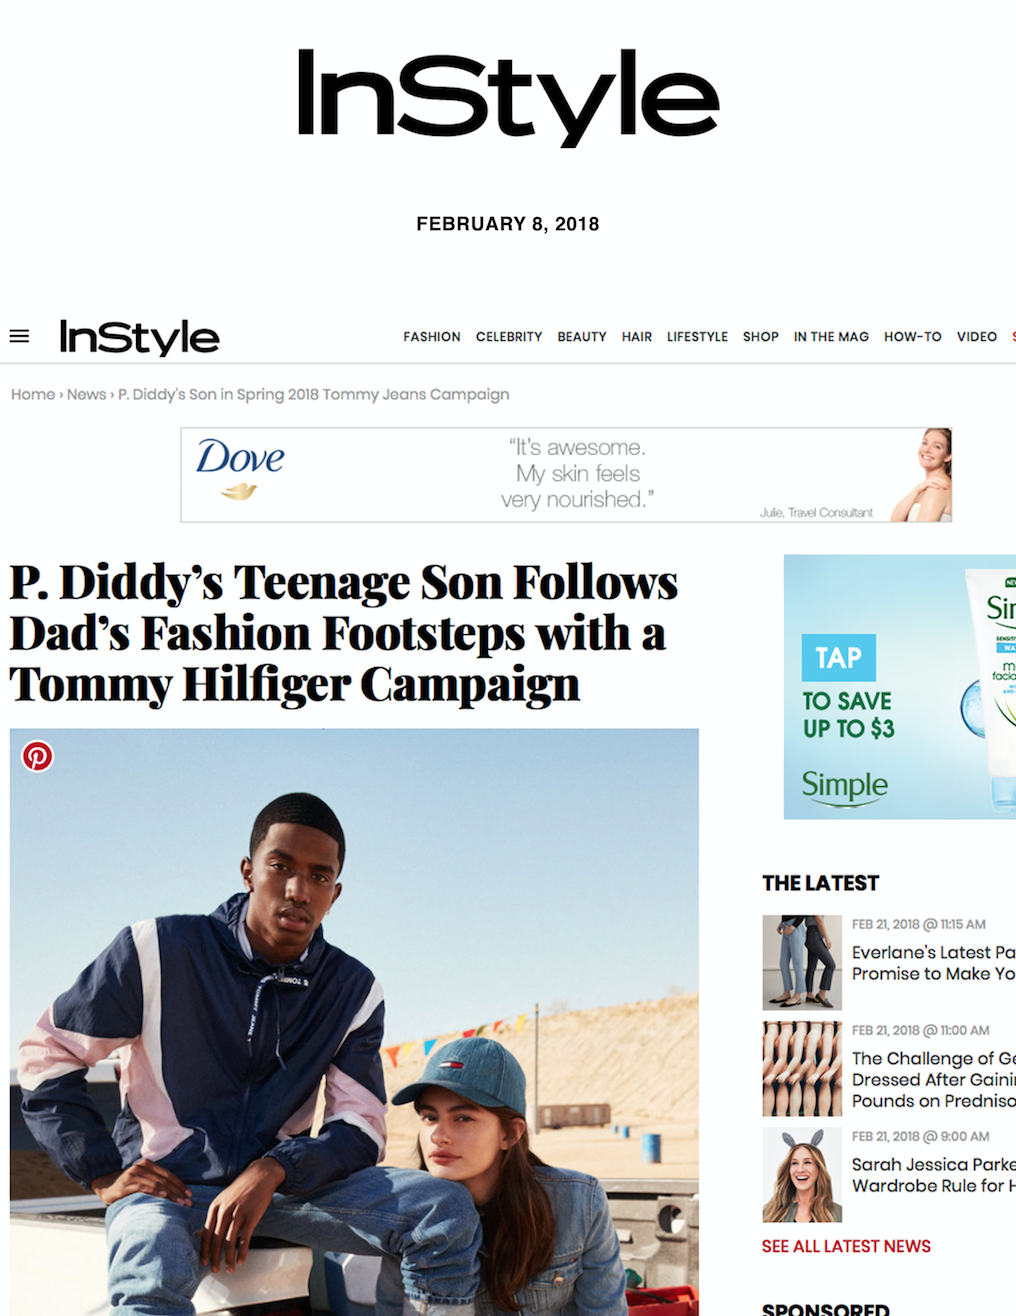 P. Diddy's Teenage Son Follows Dad's Fashion Footsteps with a Tommy Hilfiger Campaign